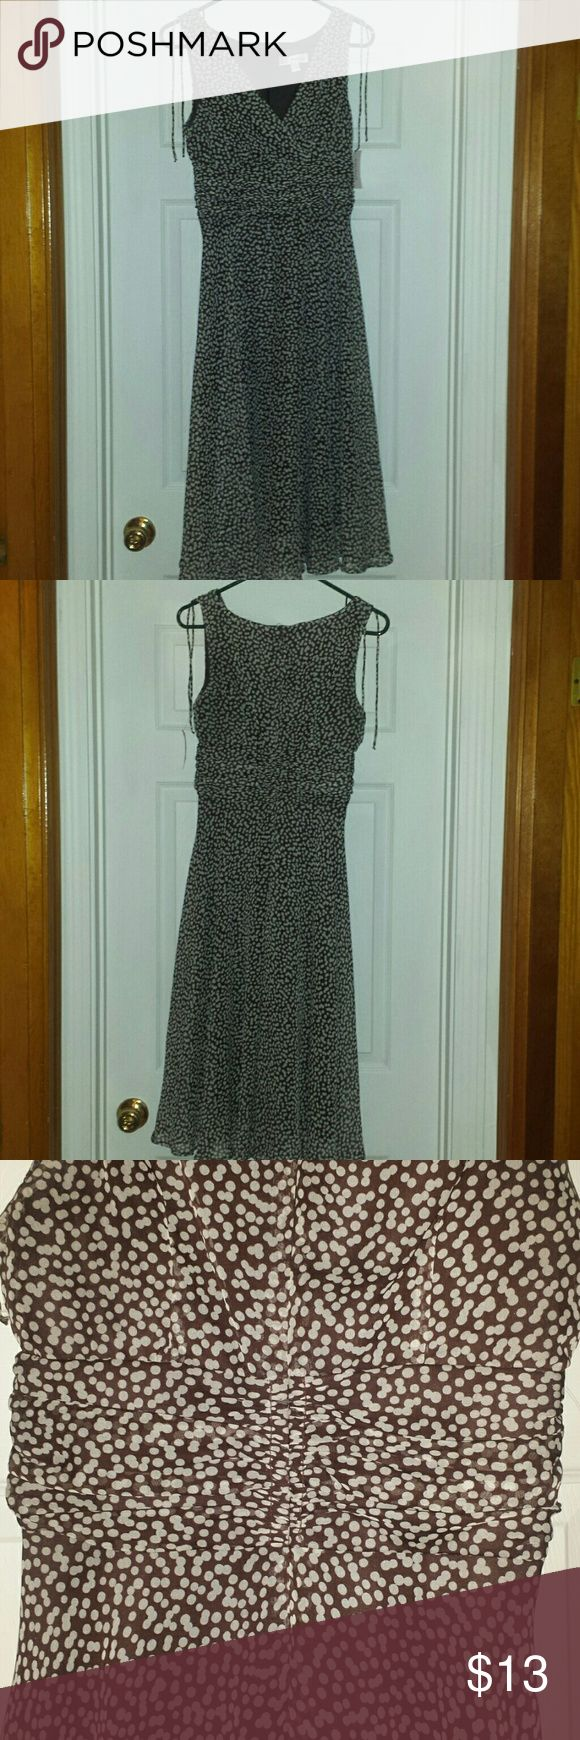 Classic polka dot dress This sweet and classy polka dot dress is flattering for any body shape, with a ruched waist, v neckline, and flowy skirt. Brown with white polka dots. New with tags. Dress Barn Dresses